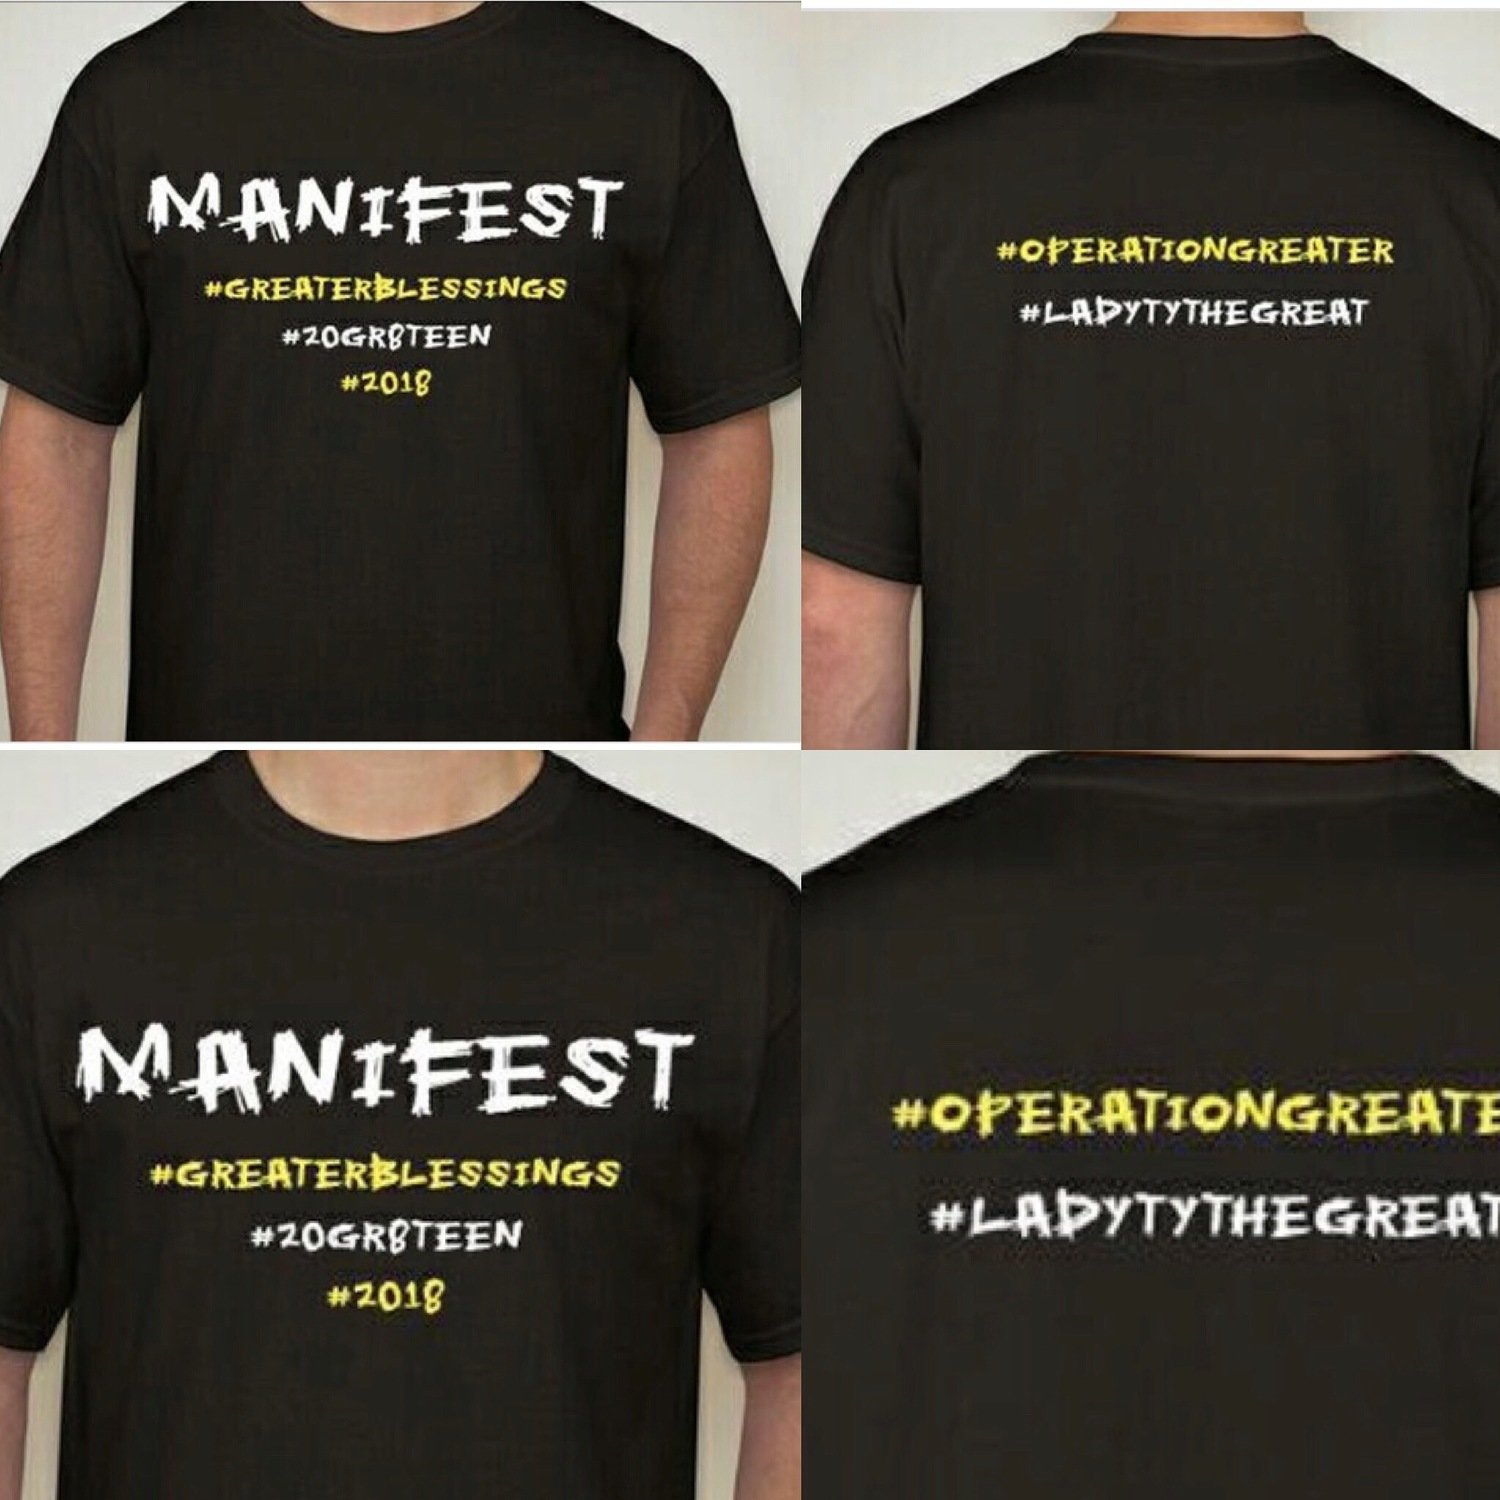 Manifest T Shirt #GreaterBlessing Special Edition